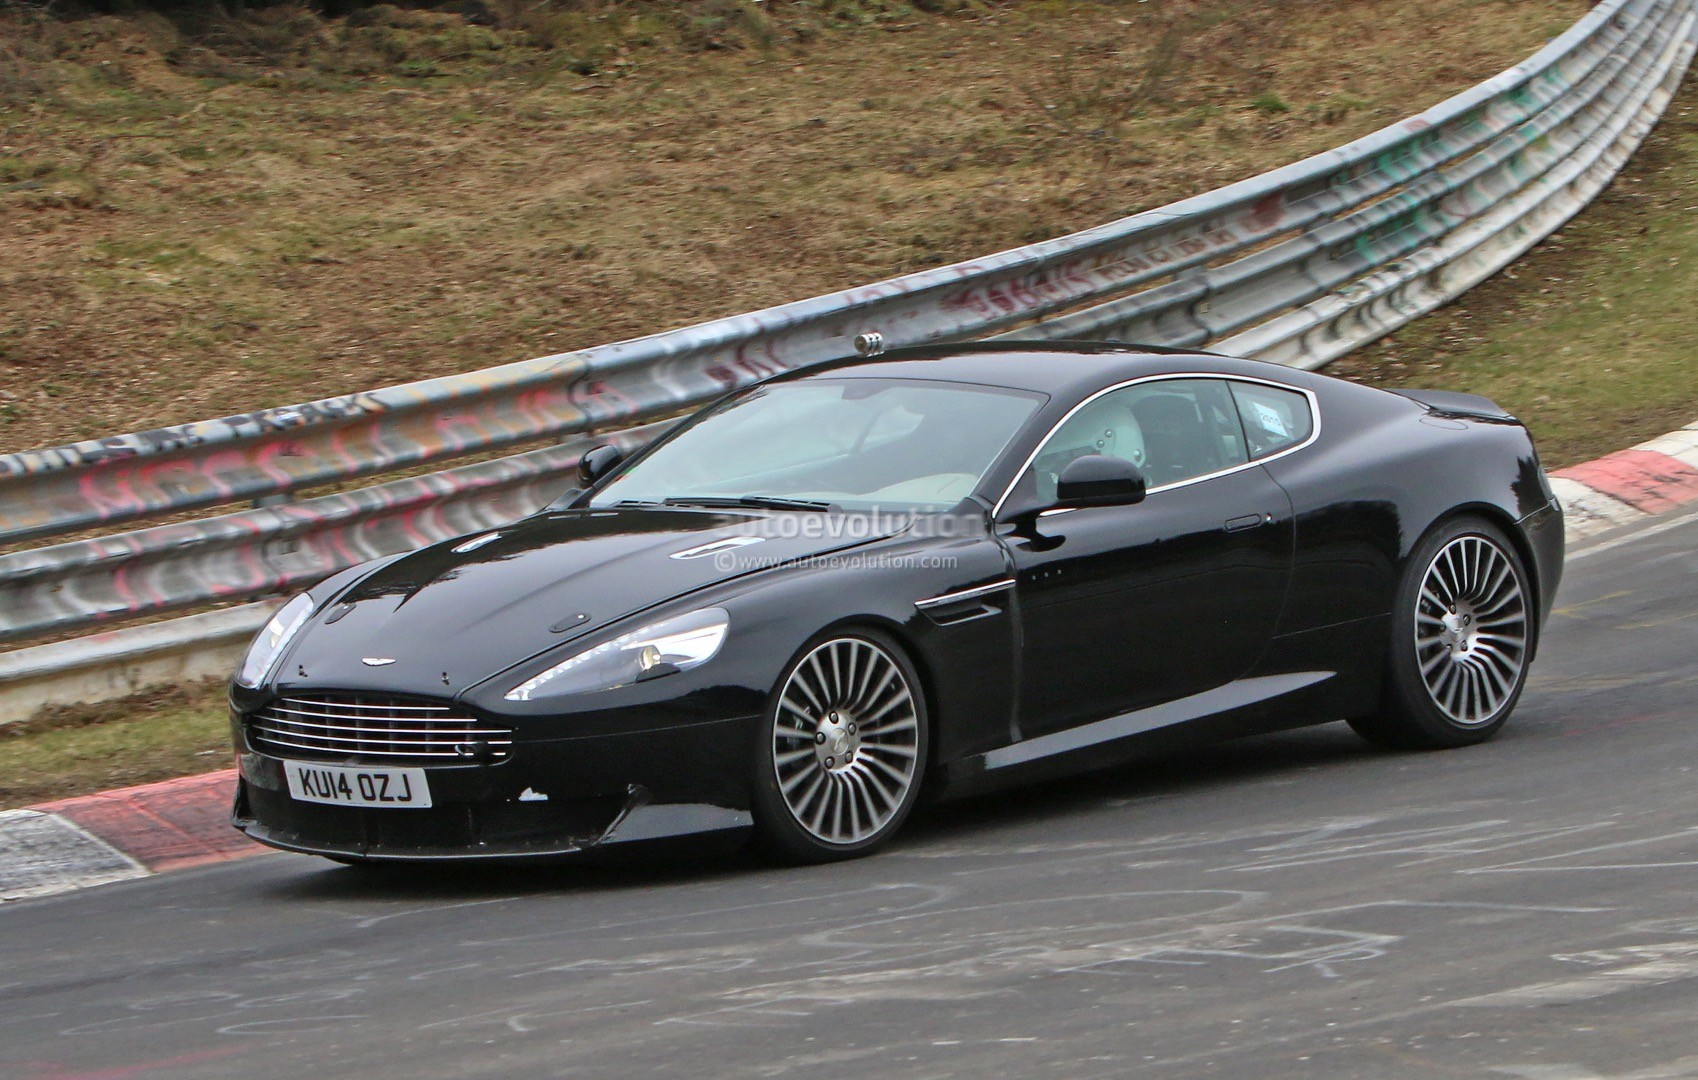 2016 Aston Martin DB9 Spied, It's Powered By an Atmospheric V12